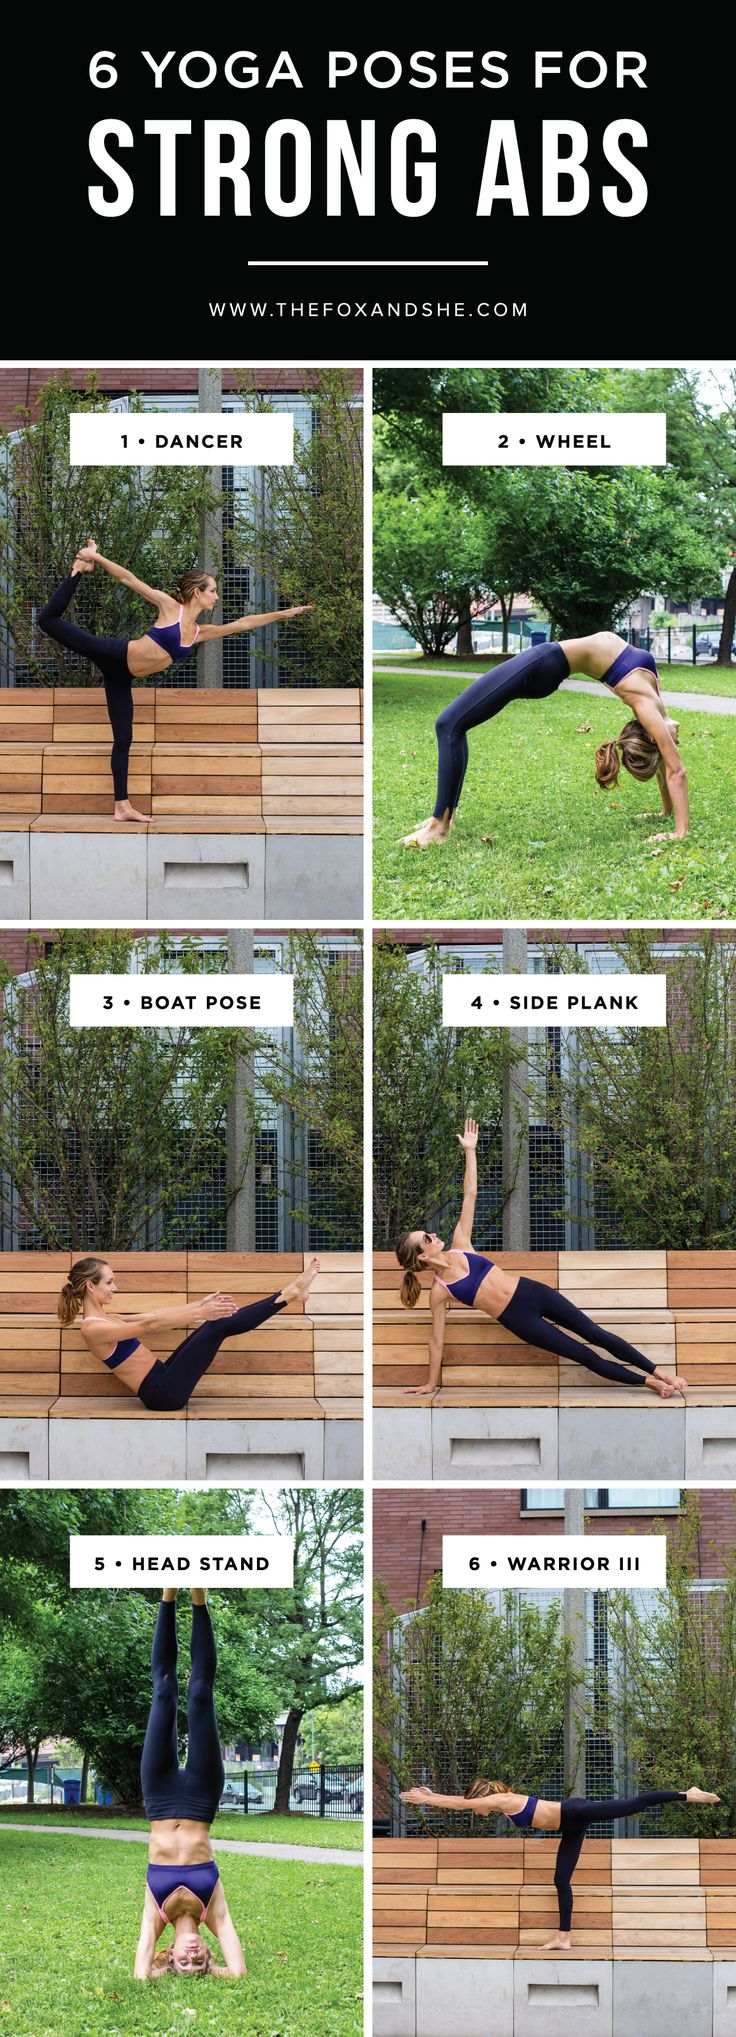 Summer is in full swing so we're sharing 6 yoga poses for strong abs so you can look great before hitting the beach or pool.